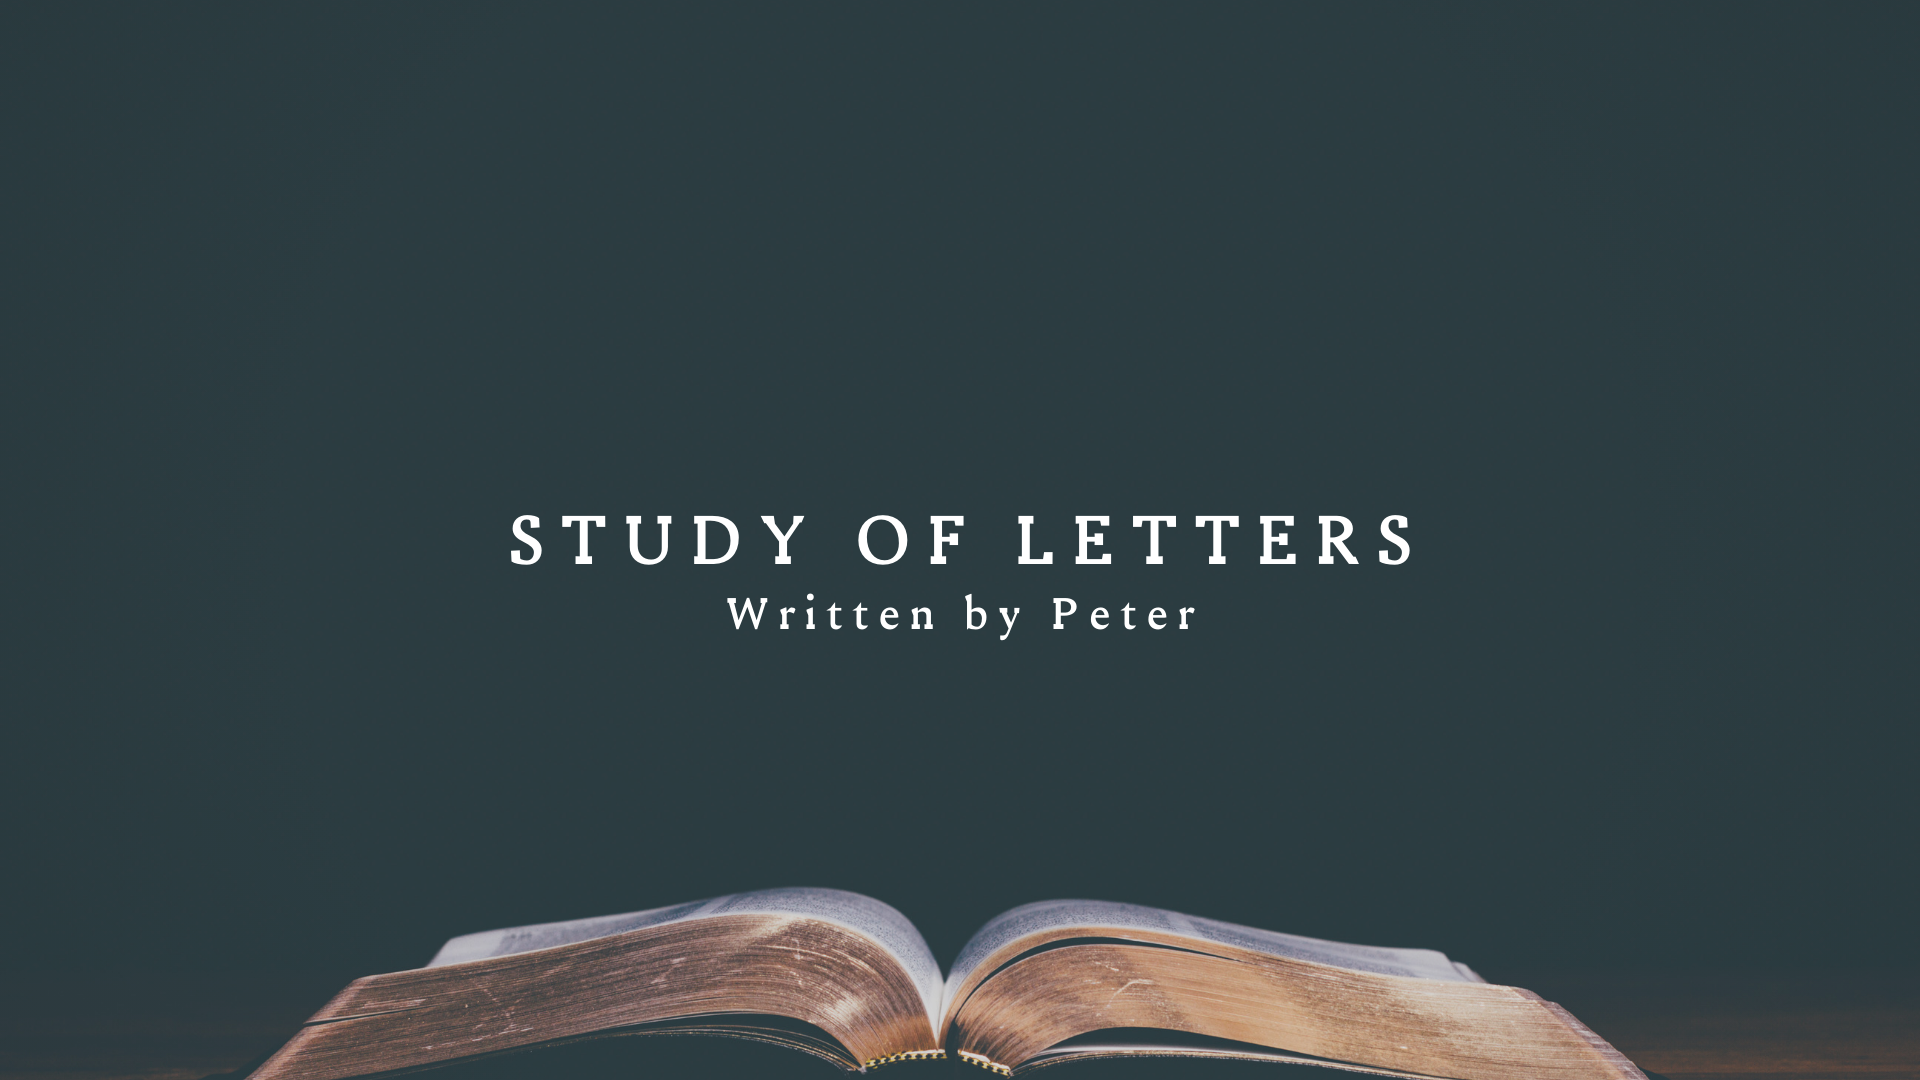 Study of Letters Written by Peter I